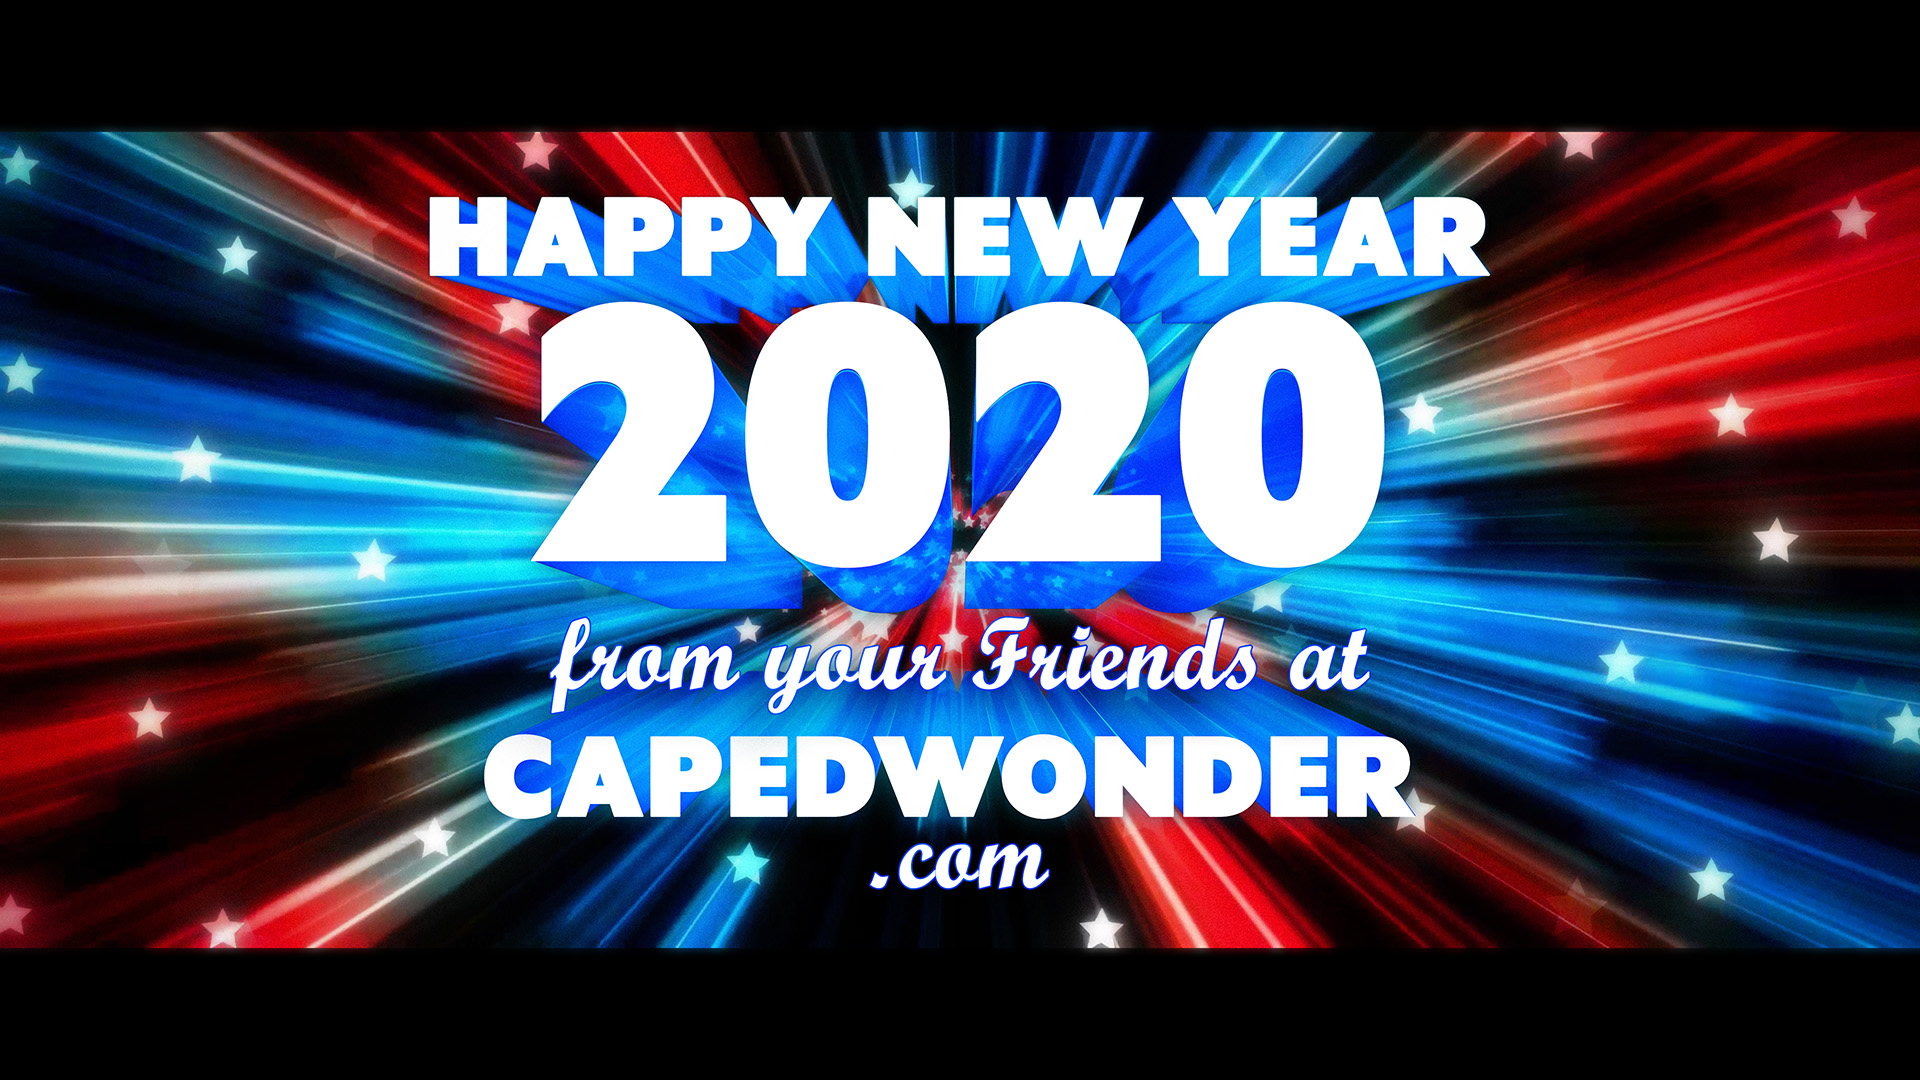 Happy New Year 2020 from CapedWonder.com!